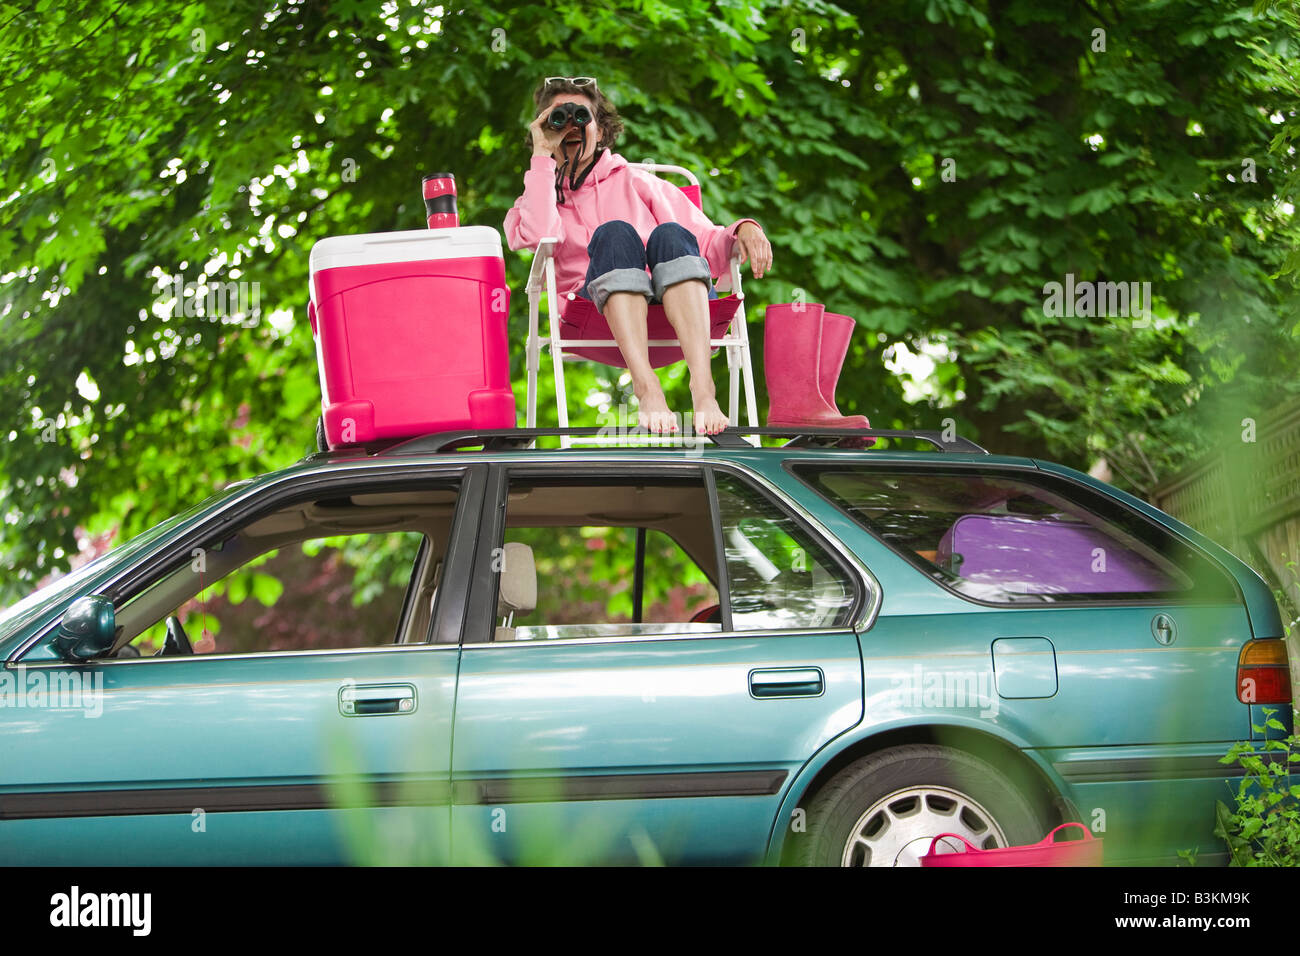 Woman with binoculars picnicking on top of car - Stock Image